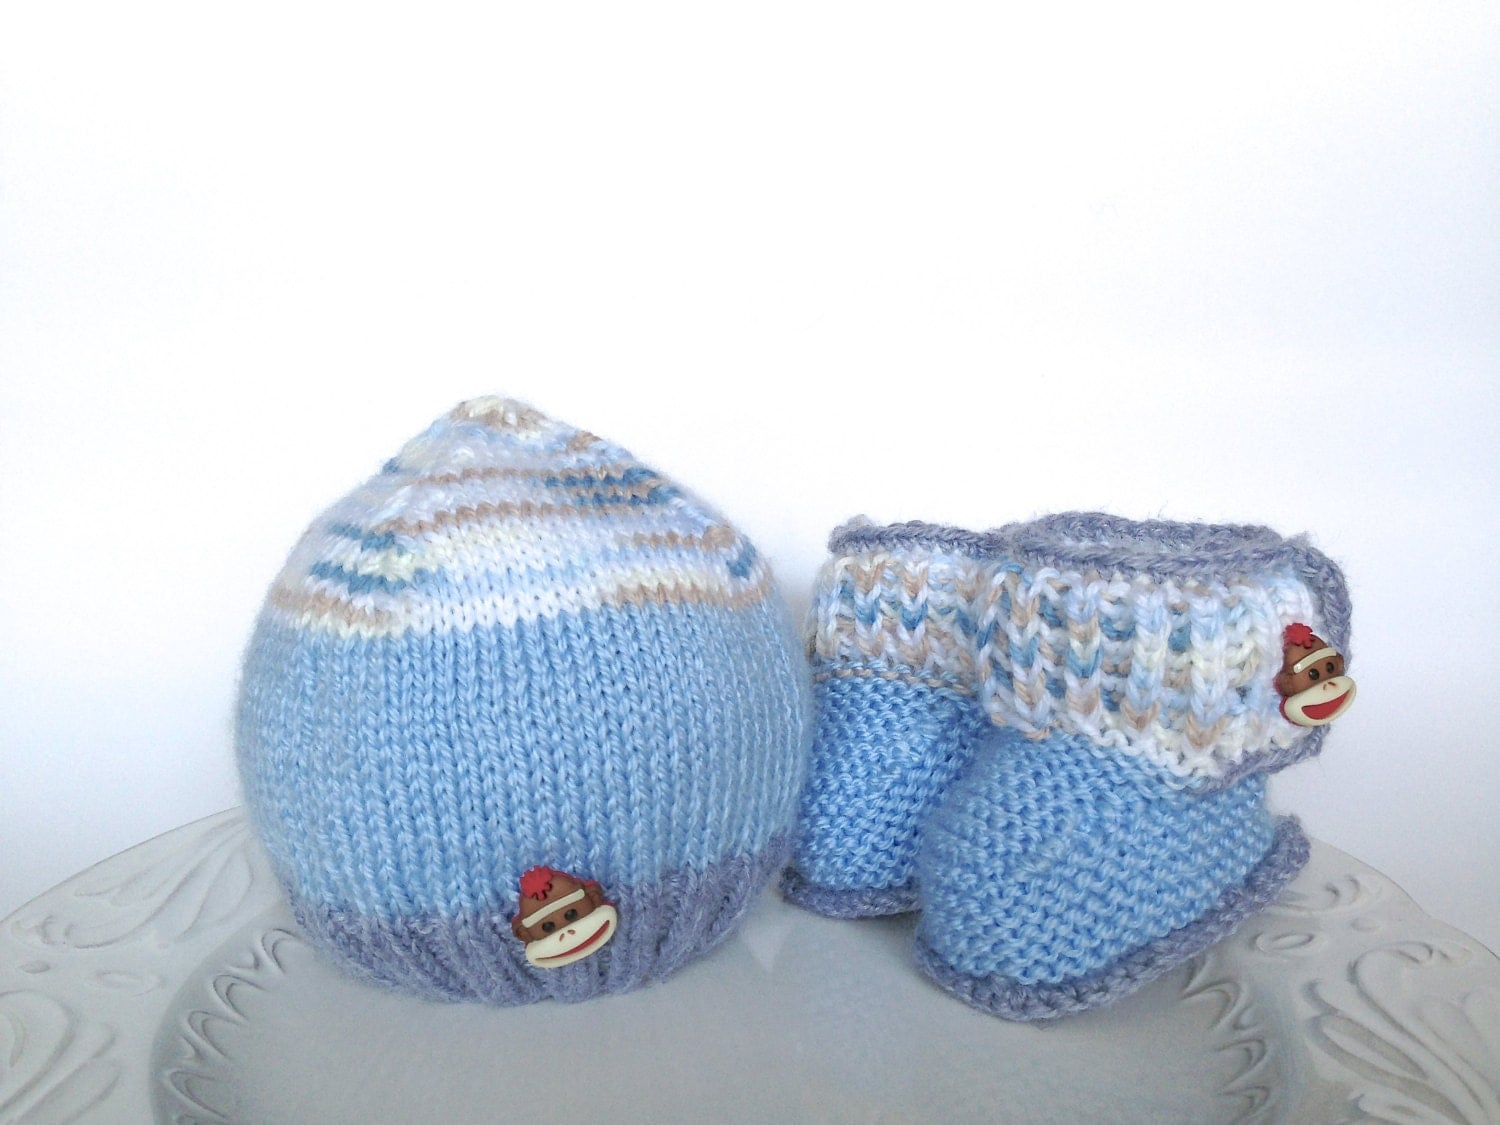 Hand knitted set for baby boy - hat and booties, ready to ship - TinyLoveGifts